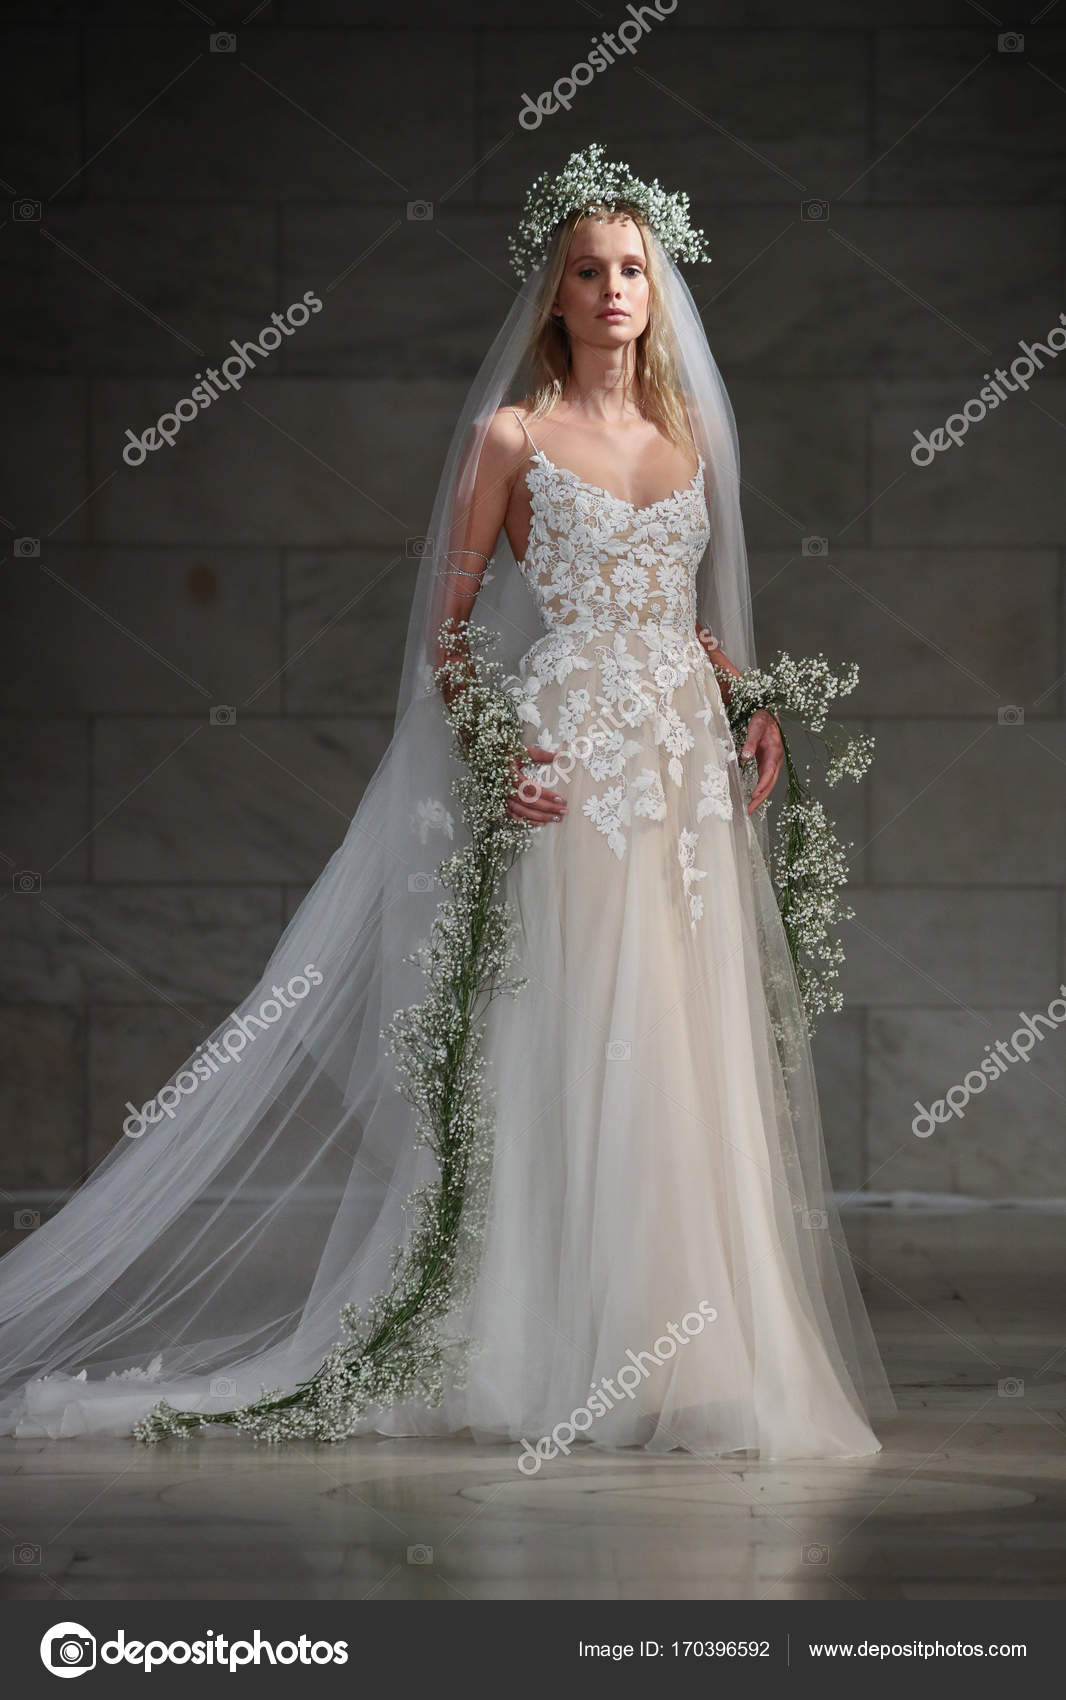 Reem acra bridal show stock editorial photo fashionstock 170396592 reem acra bridal show stock photo junglespirit Gallery